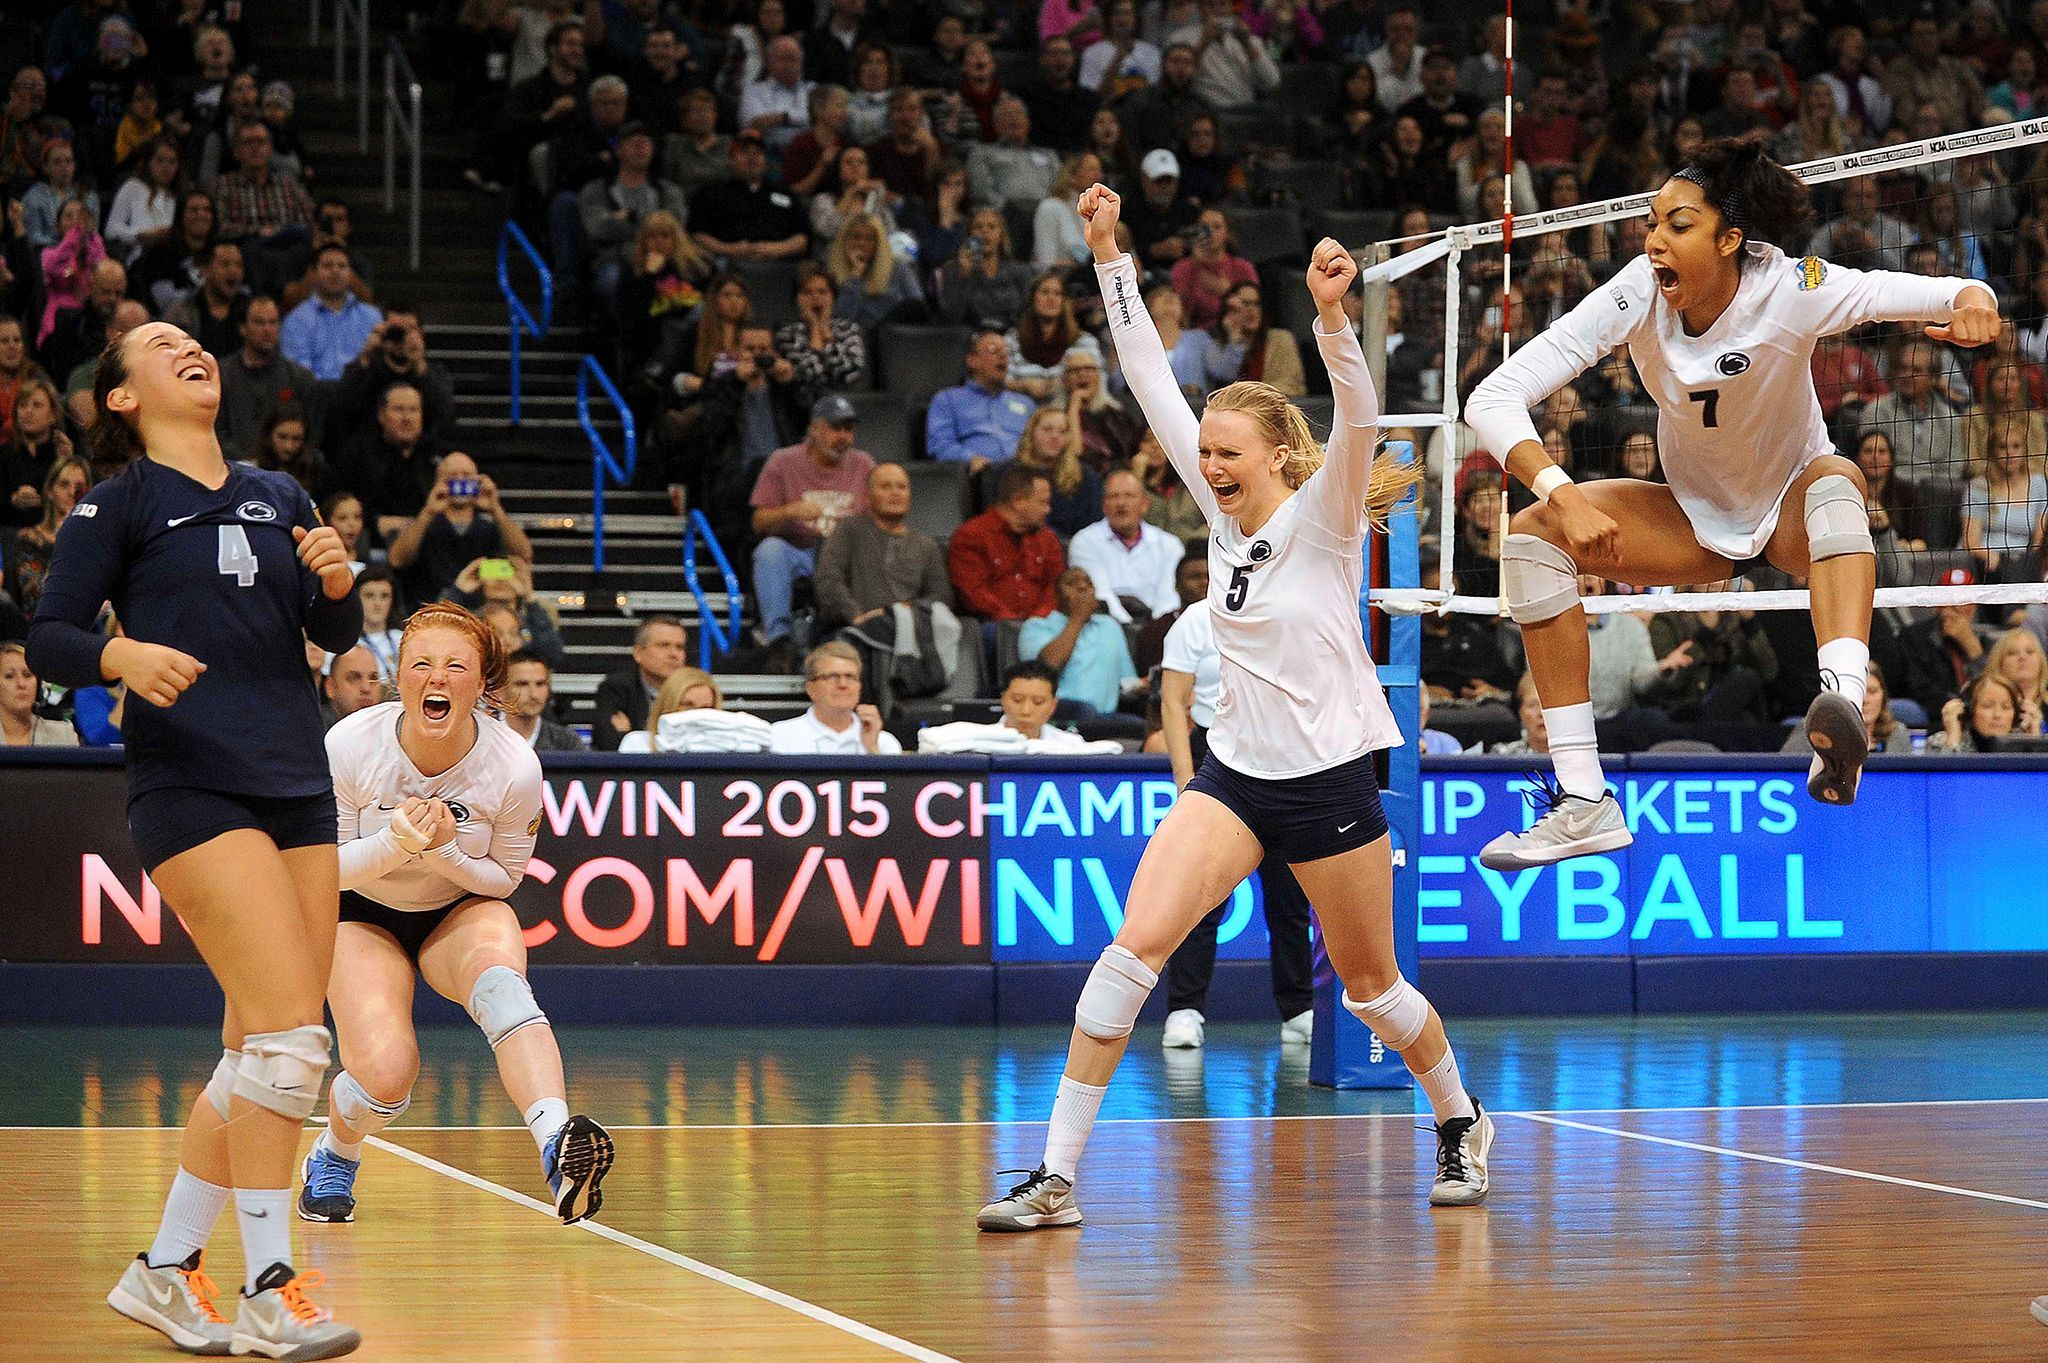 2014 Ncaa Women S Volleyball Championship Women Volleyball Volleyball Sport Volleyball